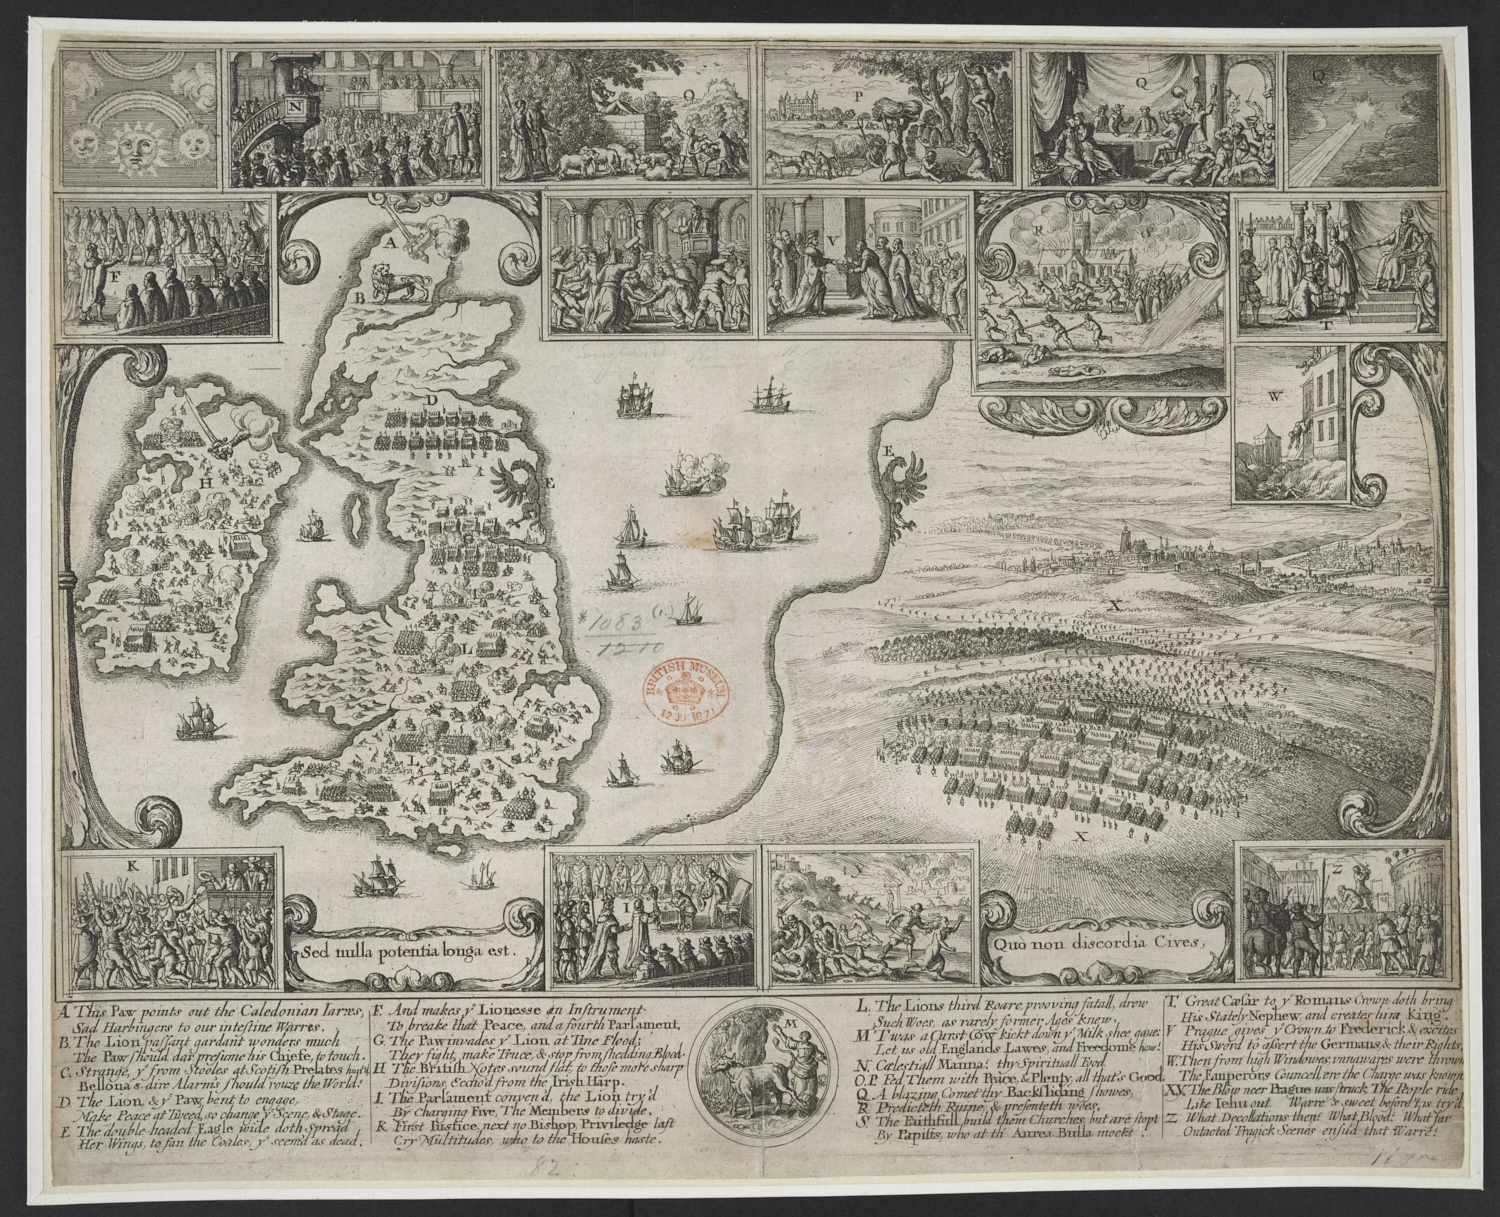 Wenceslaus Hollar's map comparing the English and Bohemian civil wars